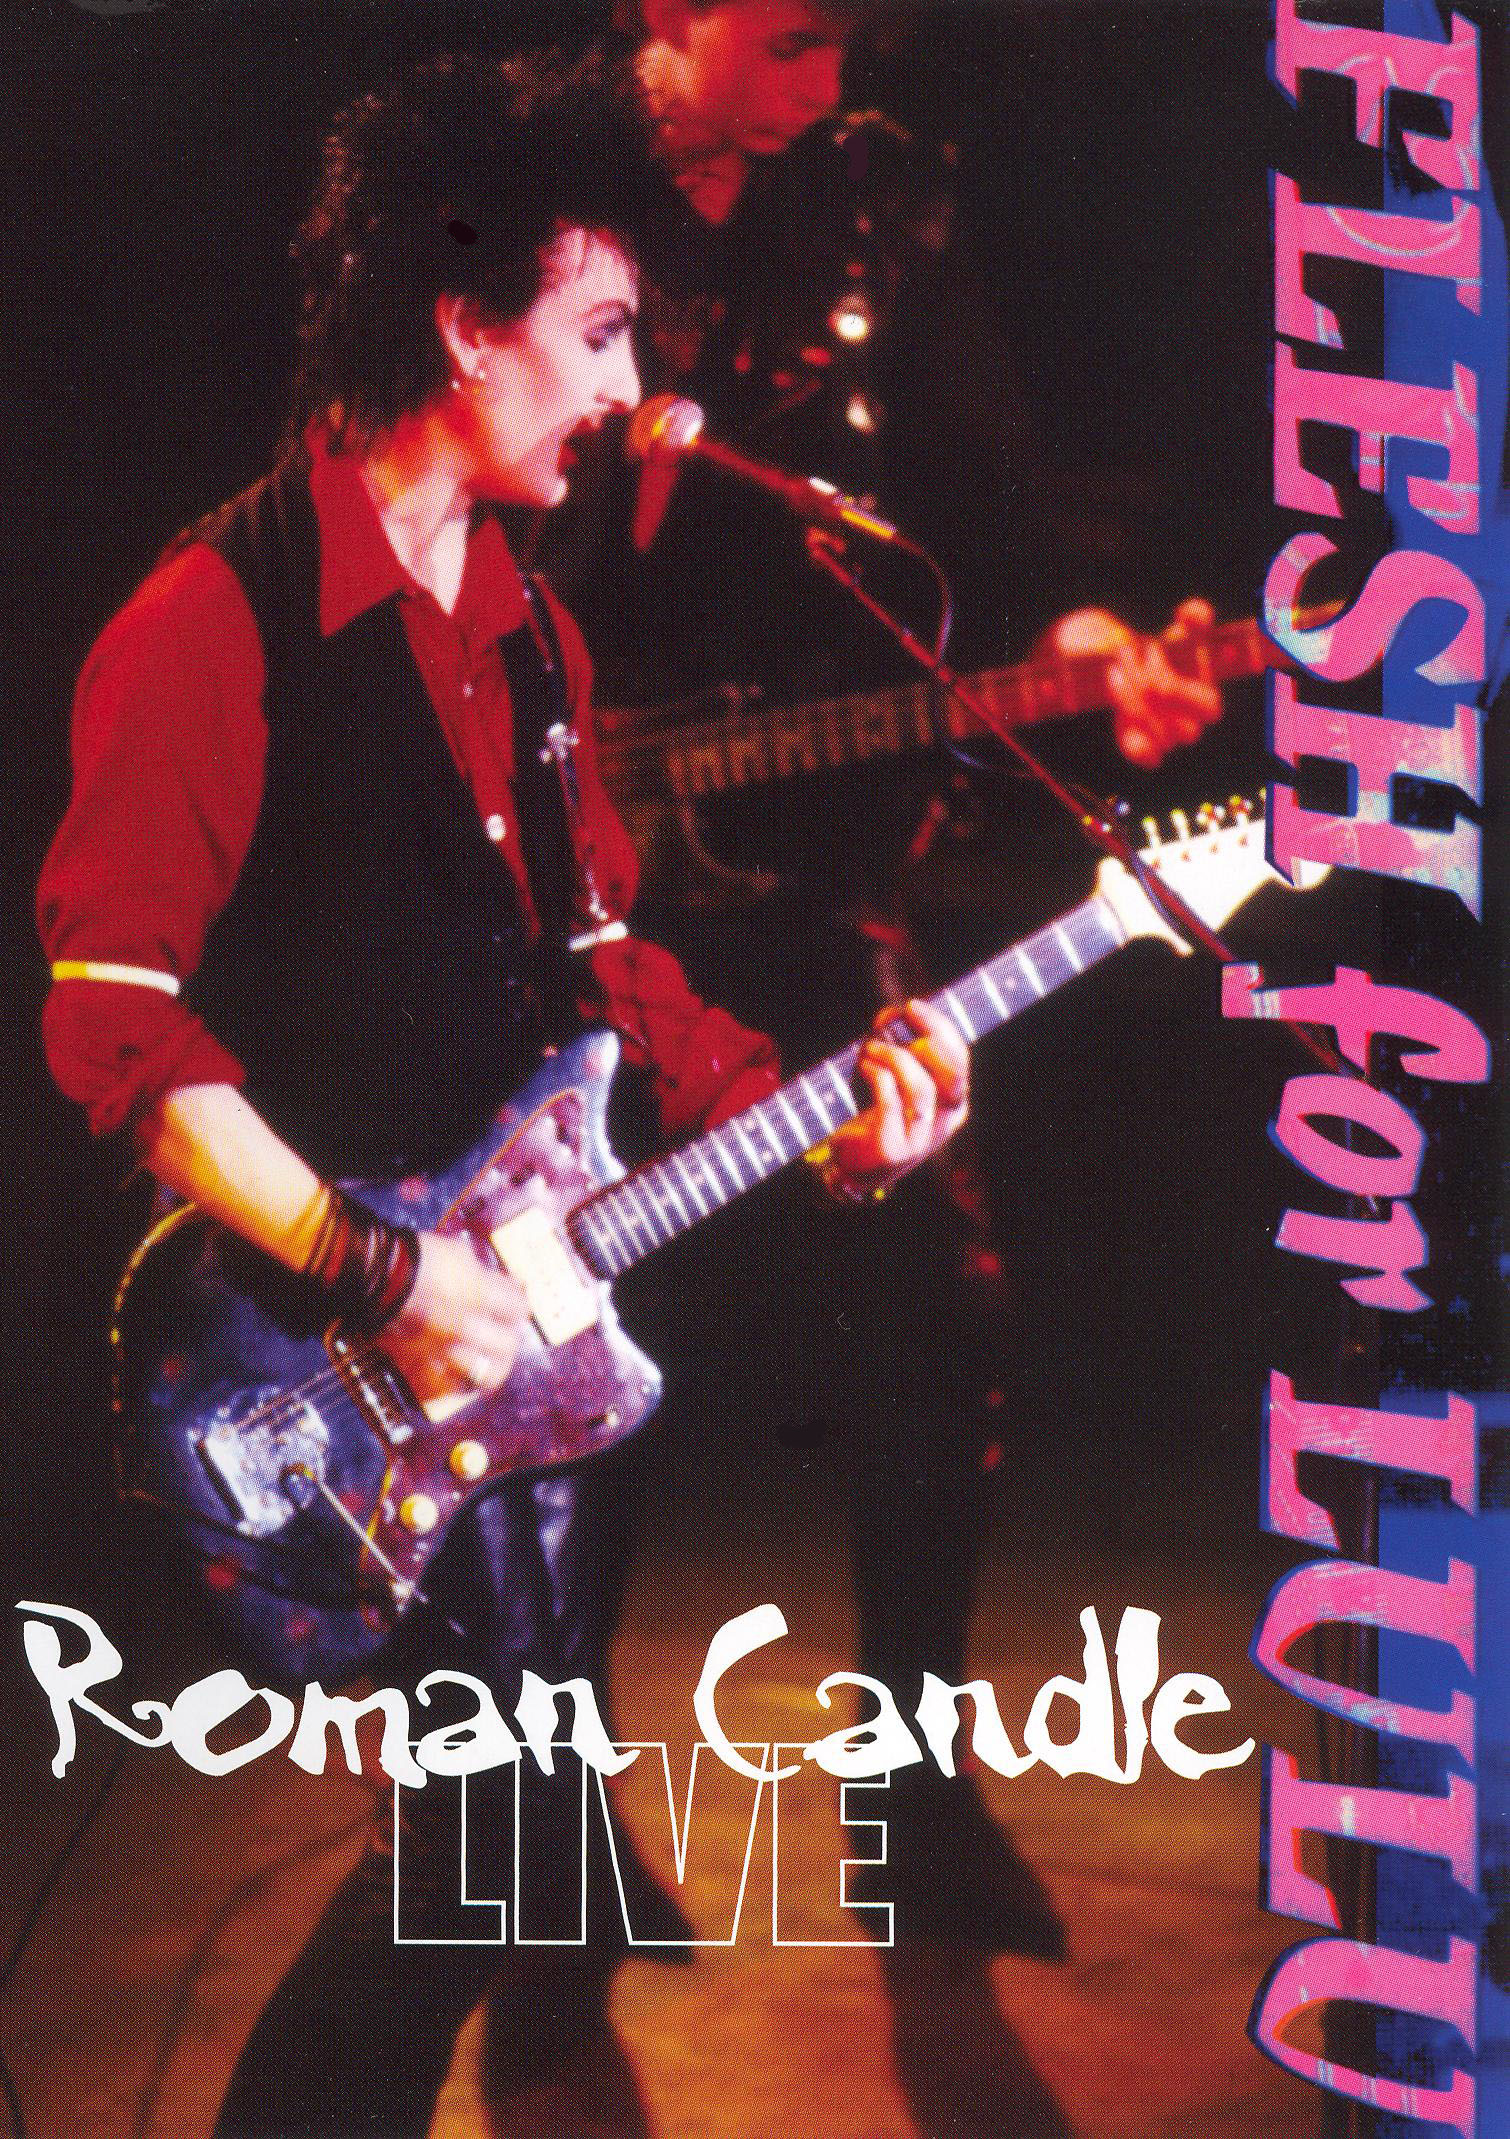 Flesh for Lulu: Roman Candle - Flesh for Lulu Live